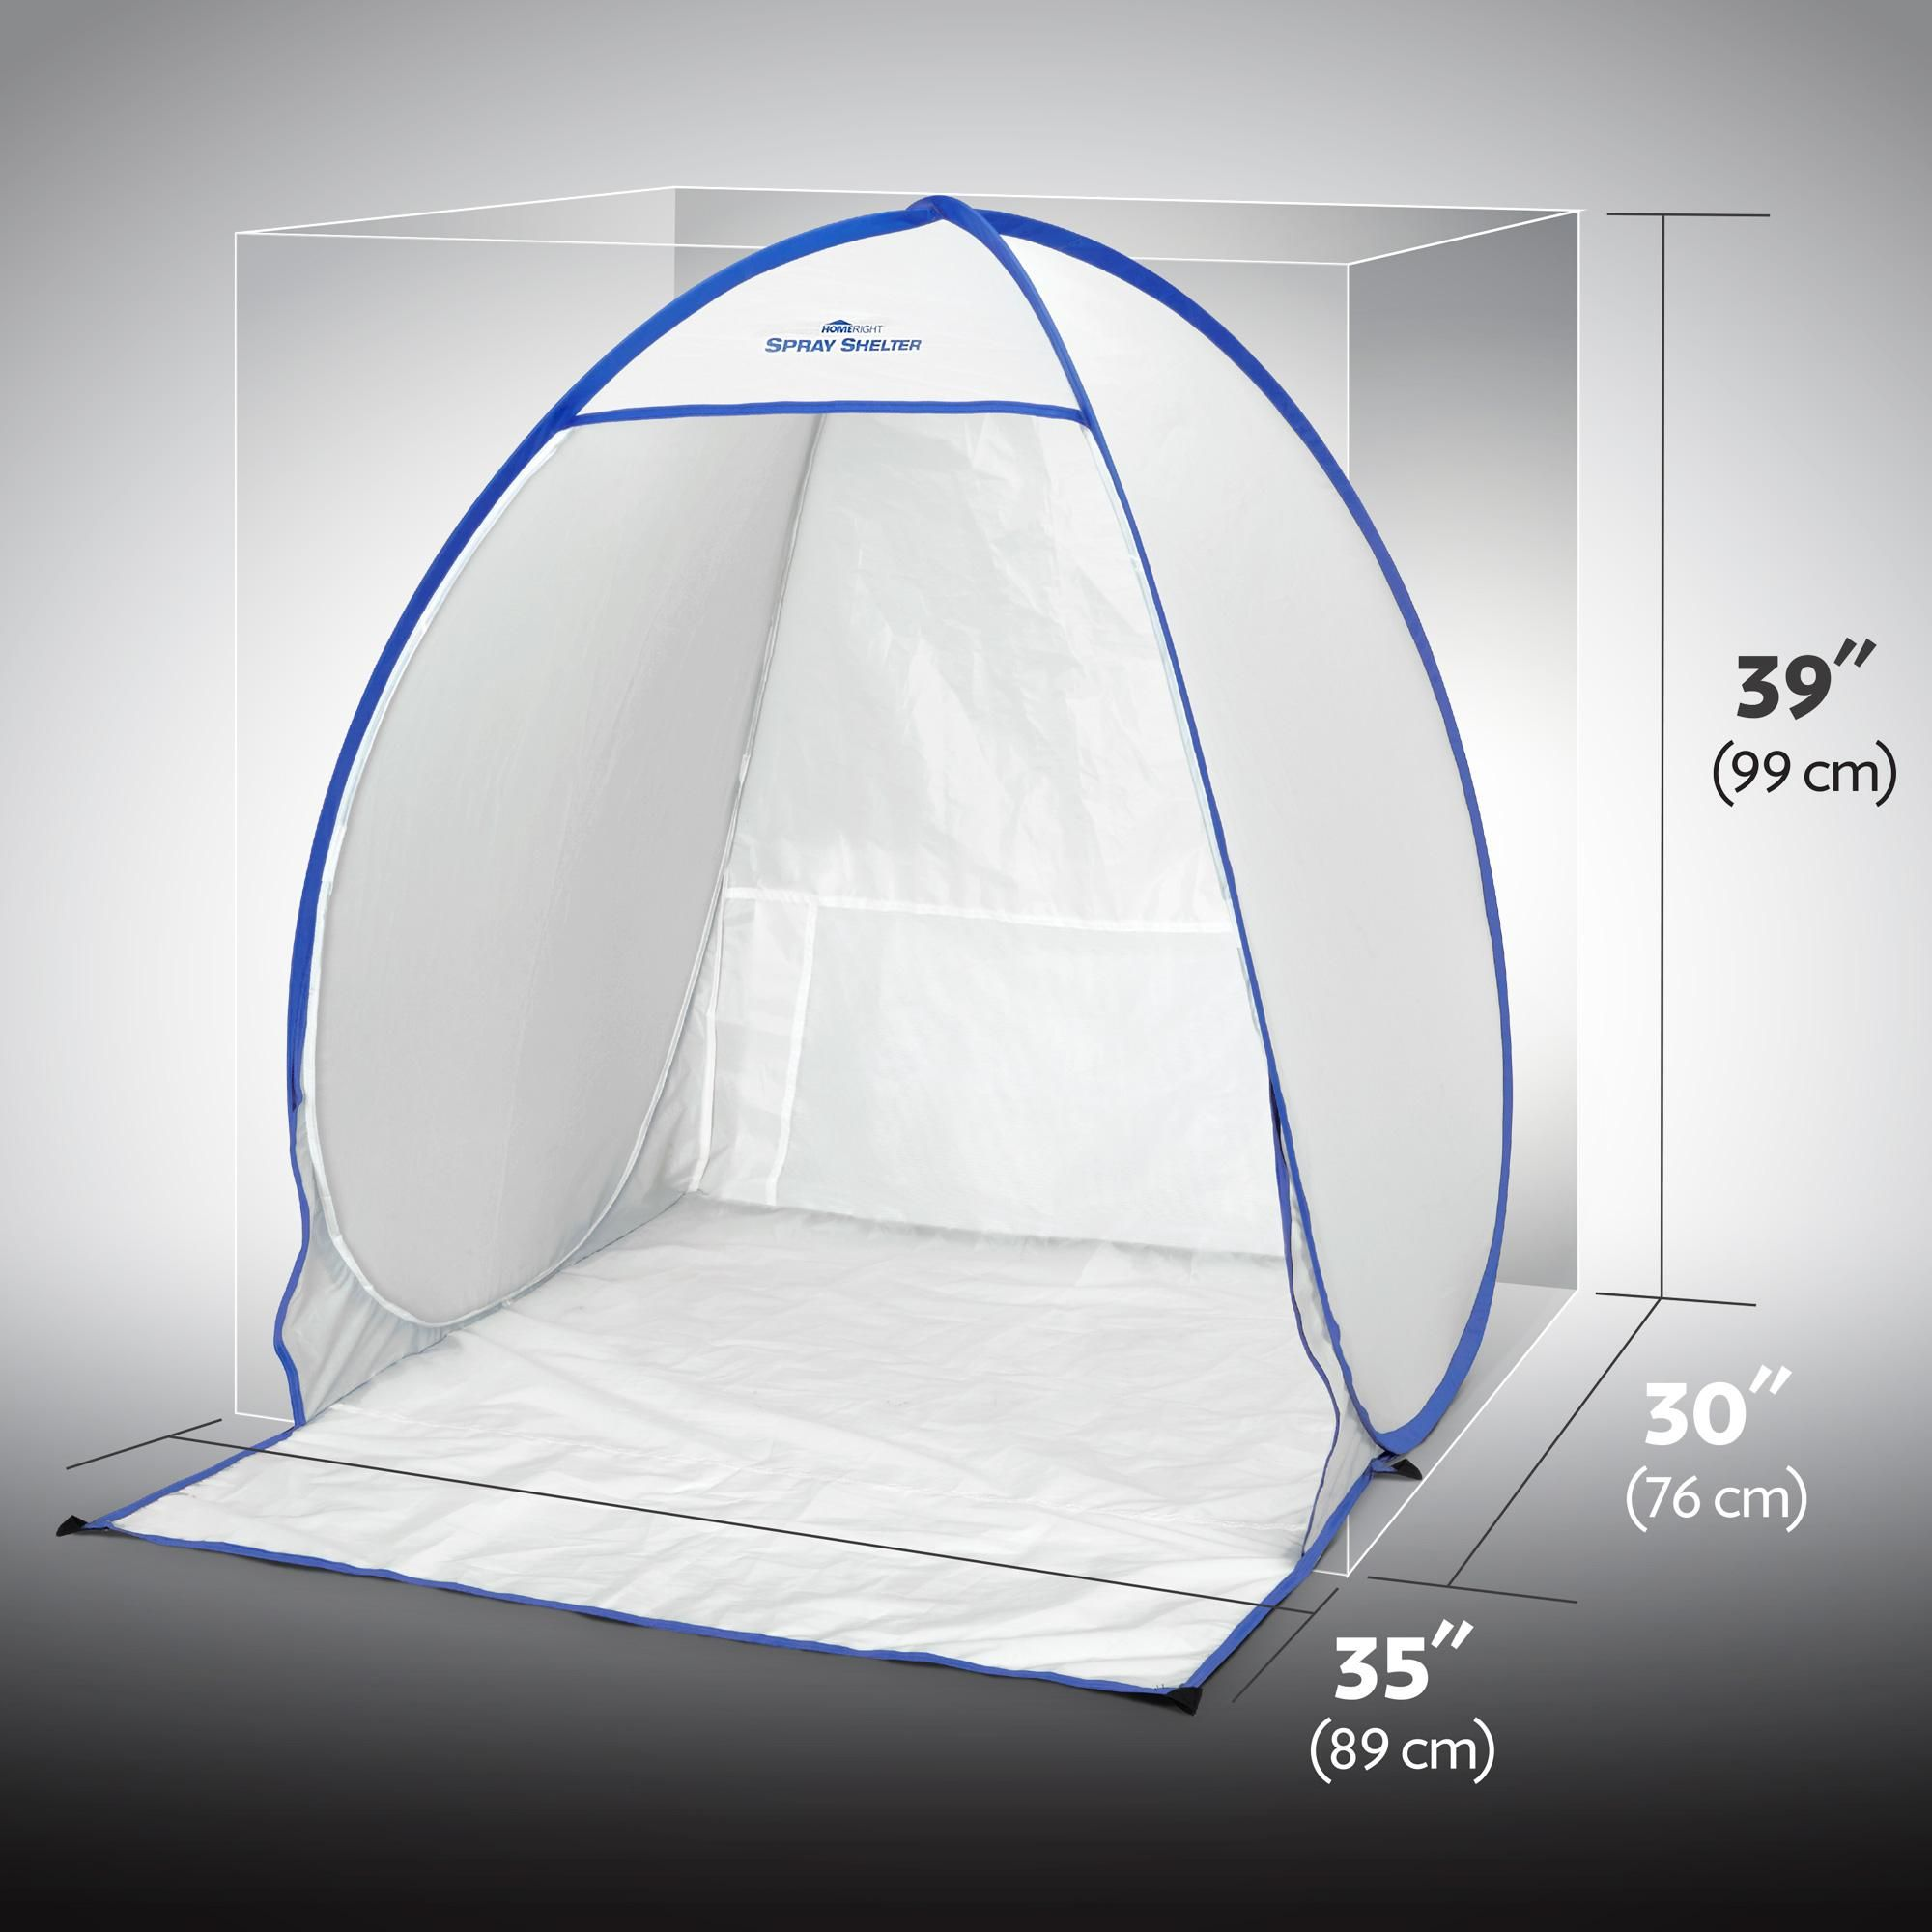 Amazon.com HomeRight Small Spray Shelter C900051 Portable Paint Booth for DIY Spray Painting & Amazon.com: HomeRight Small Spray Shelter C900051 Portable Paint ...